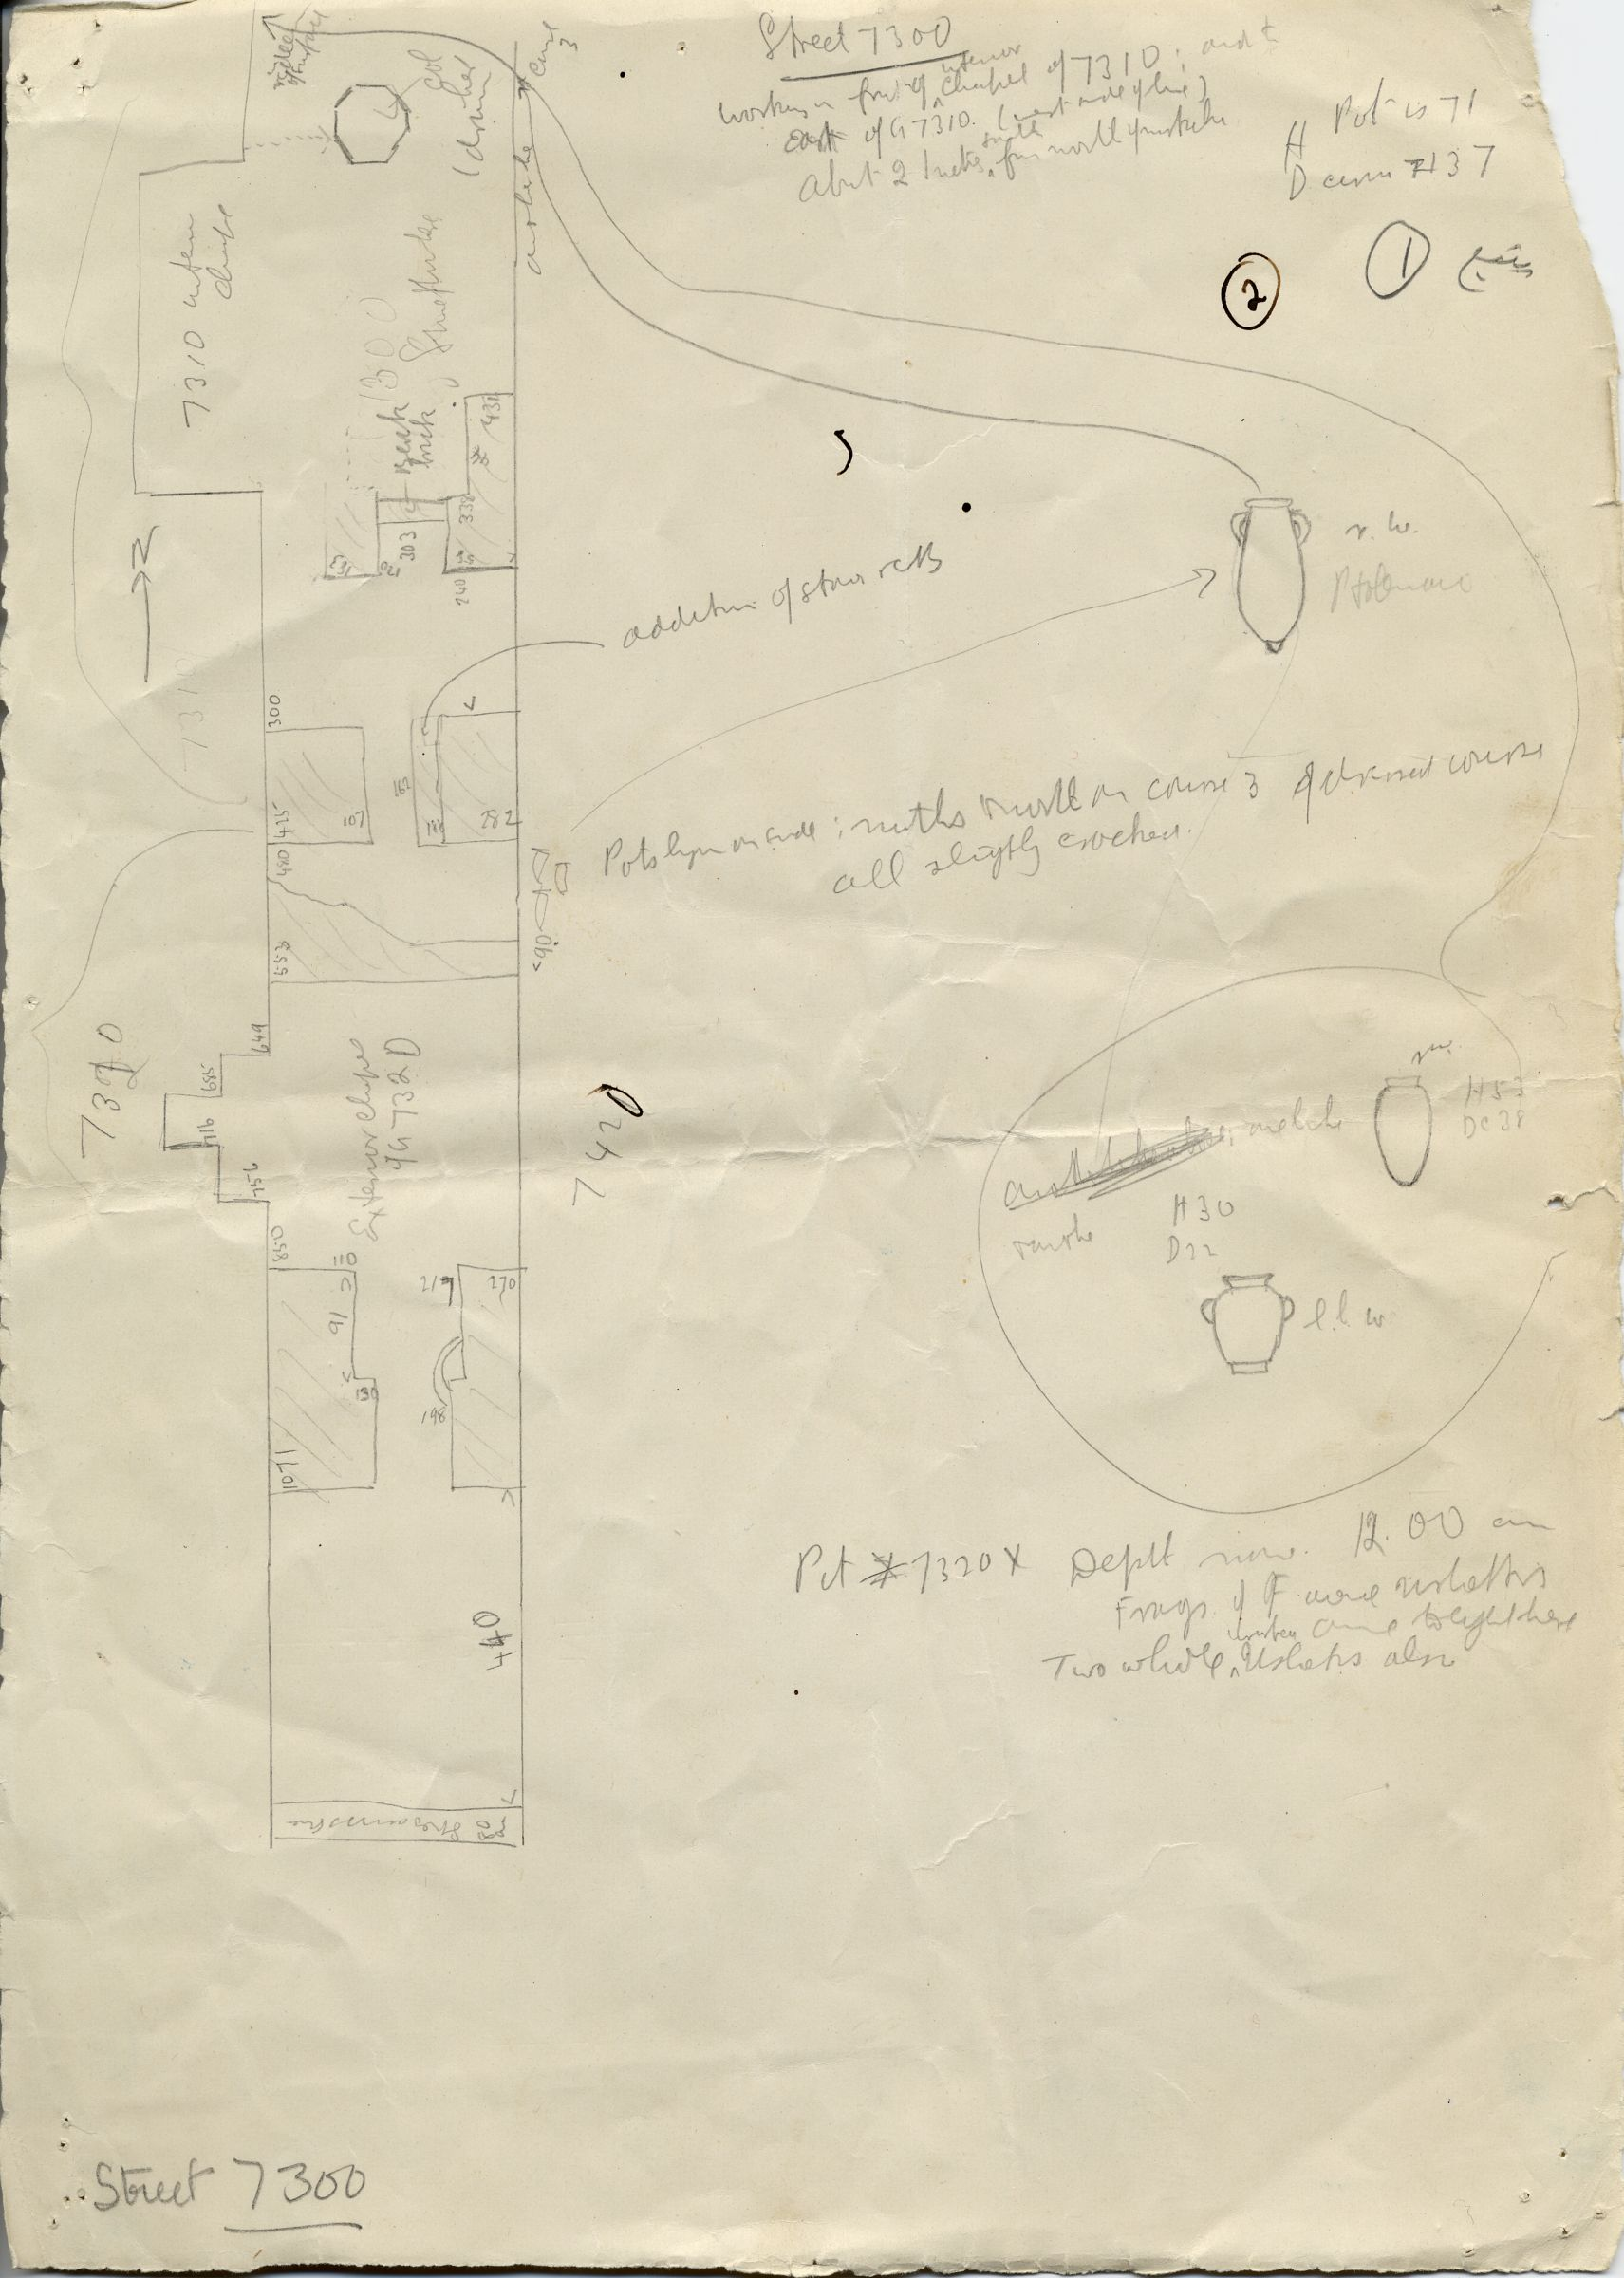 Maps and plans: Plan of Street G 7300, between G 7310-7320 and G 7410-7420